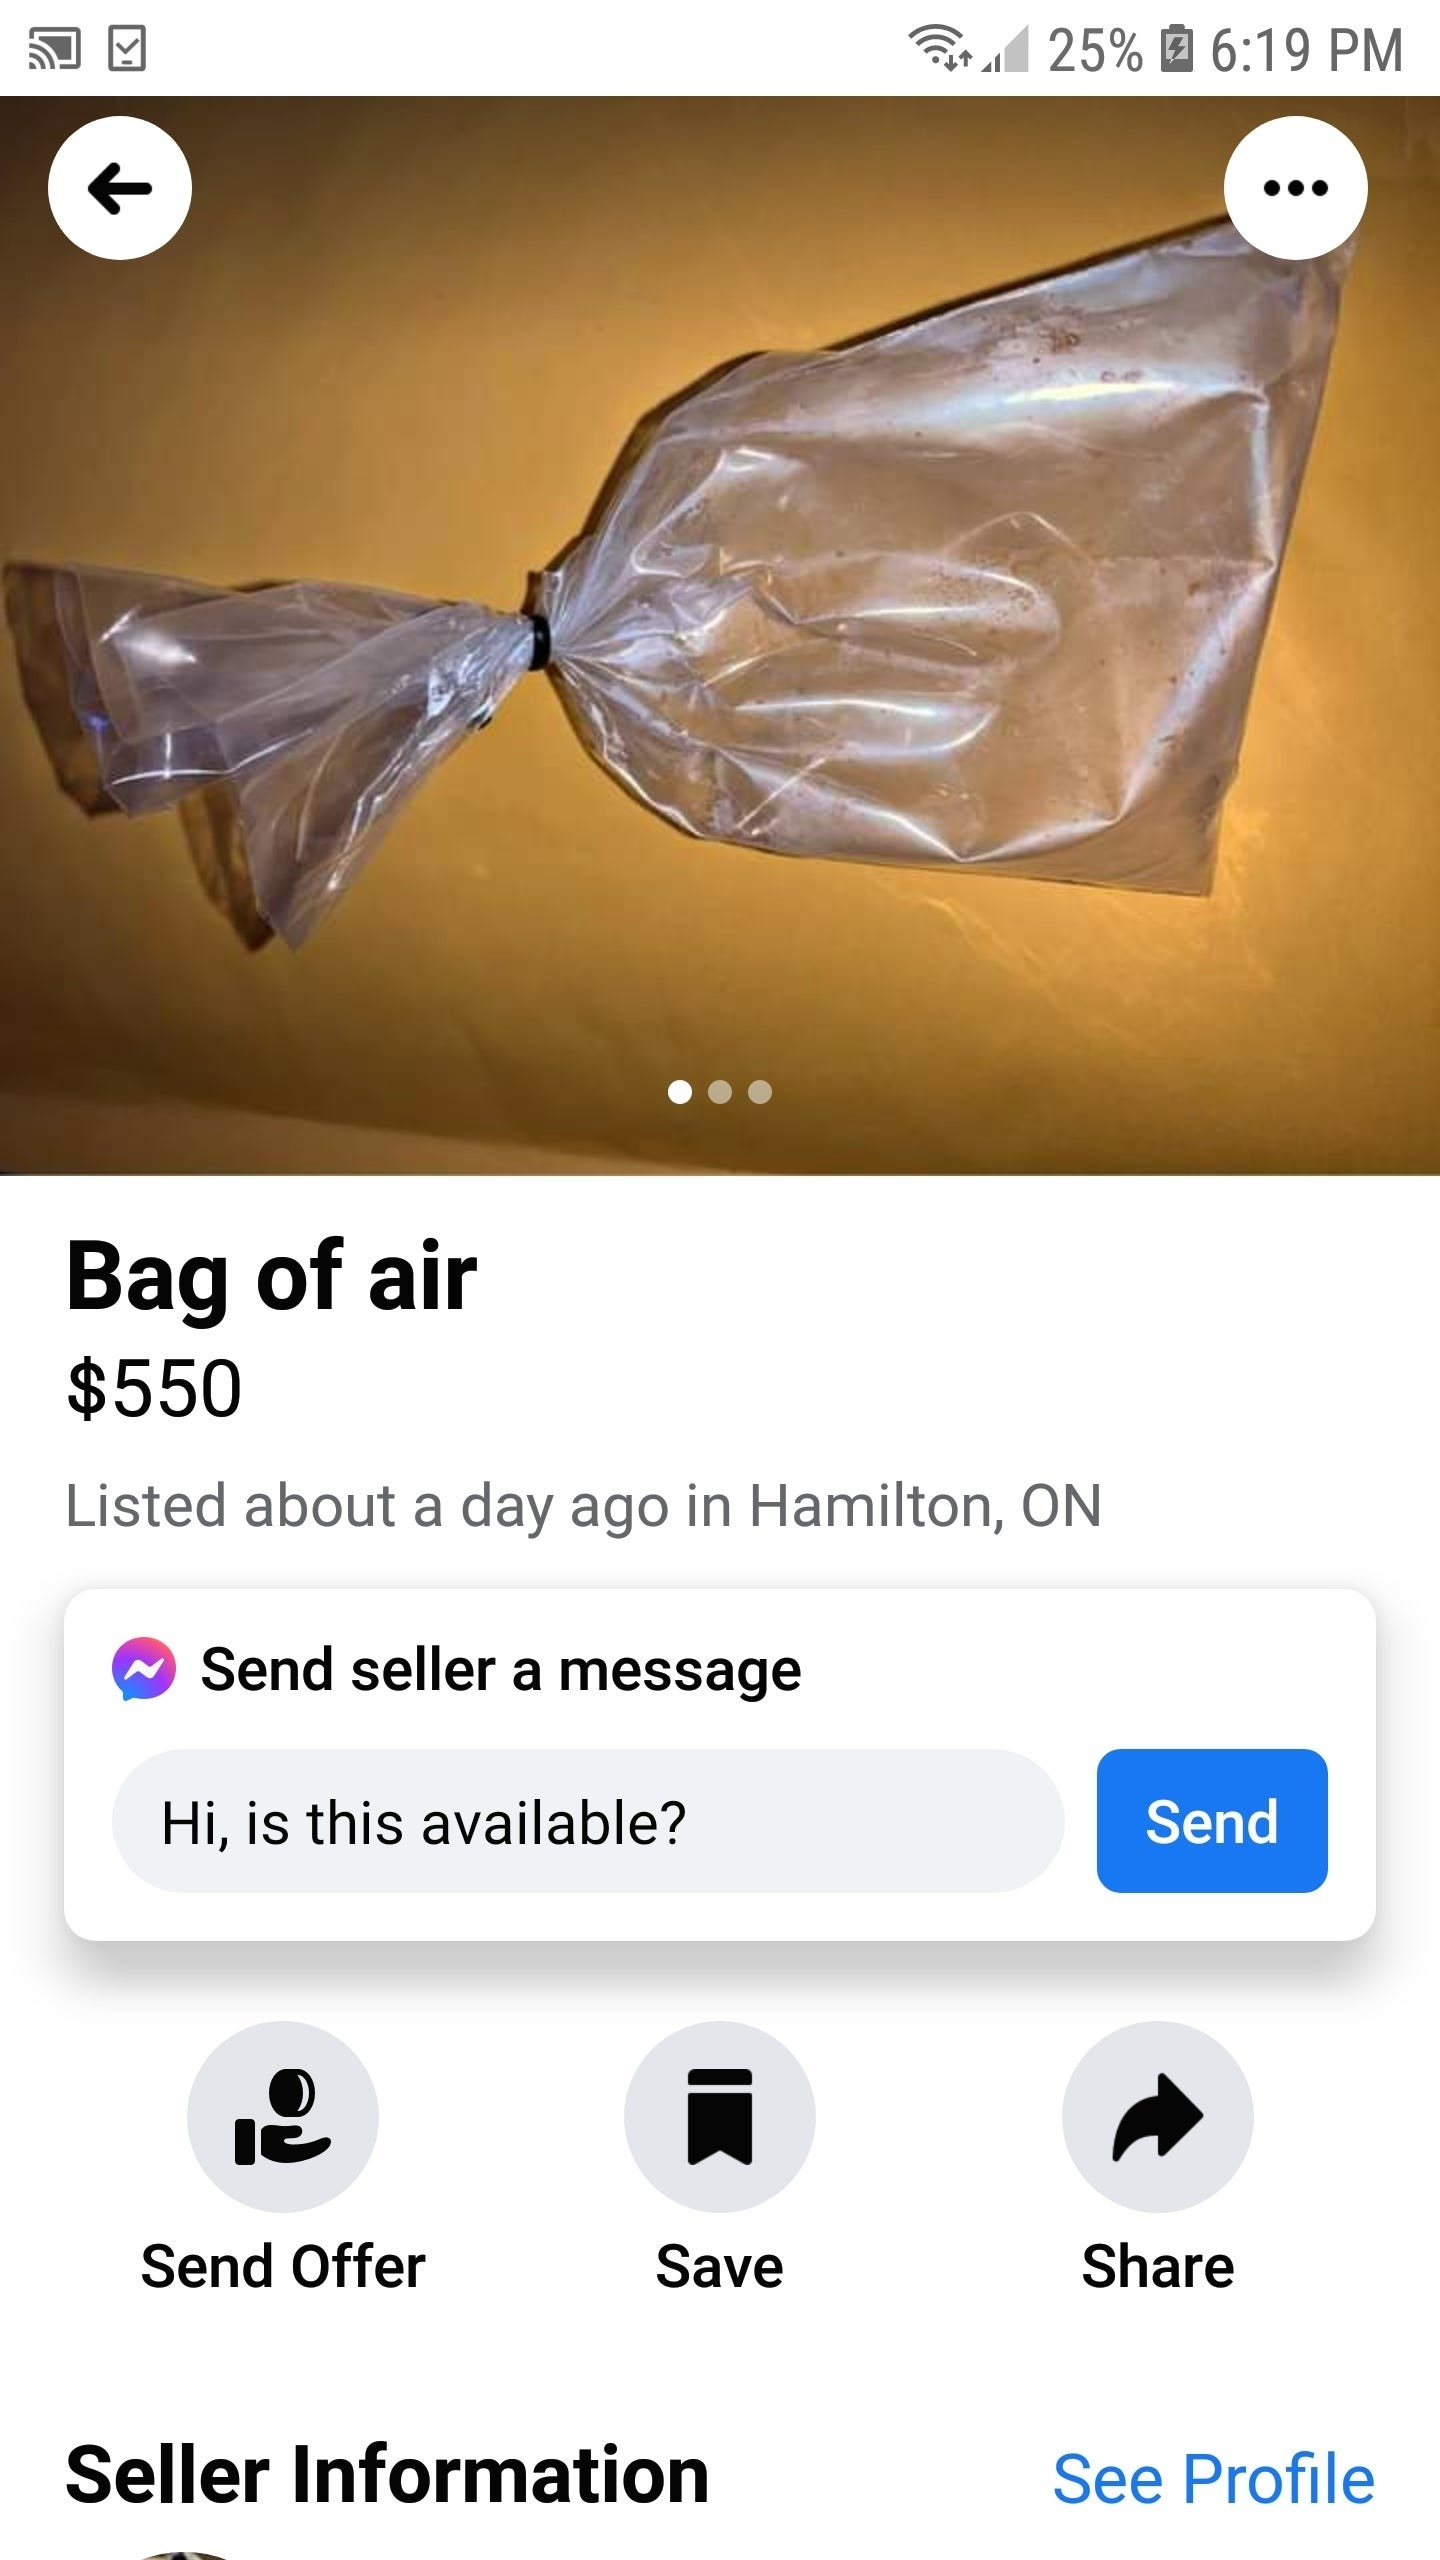 someone selling a bag of air for $550